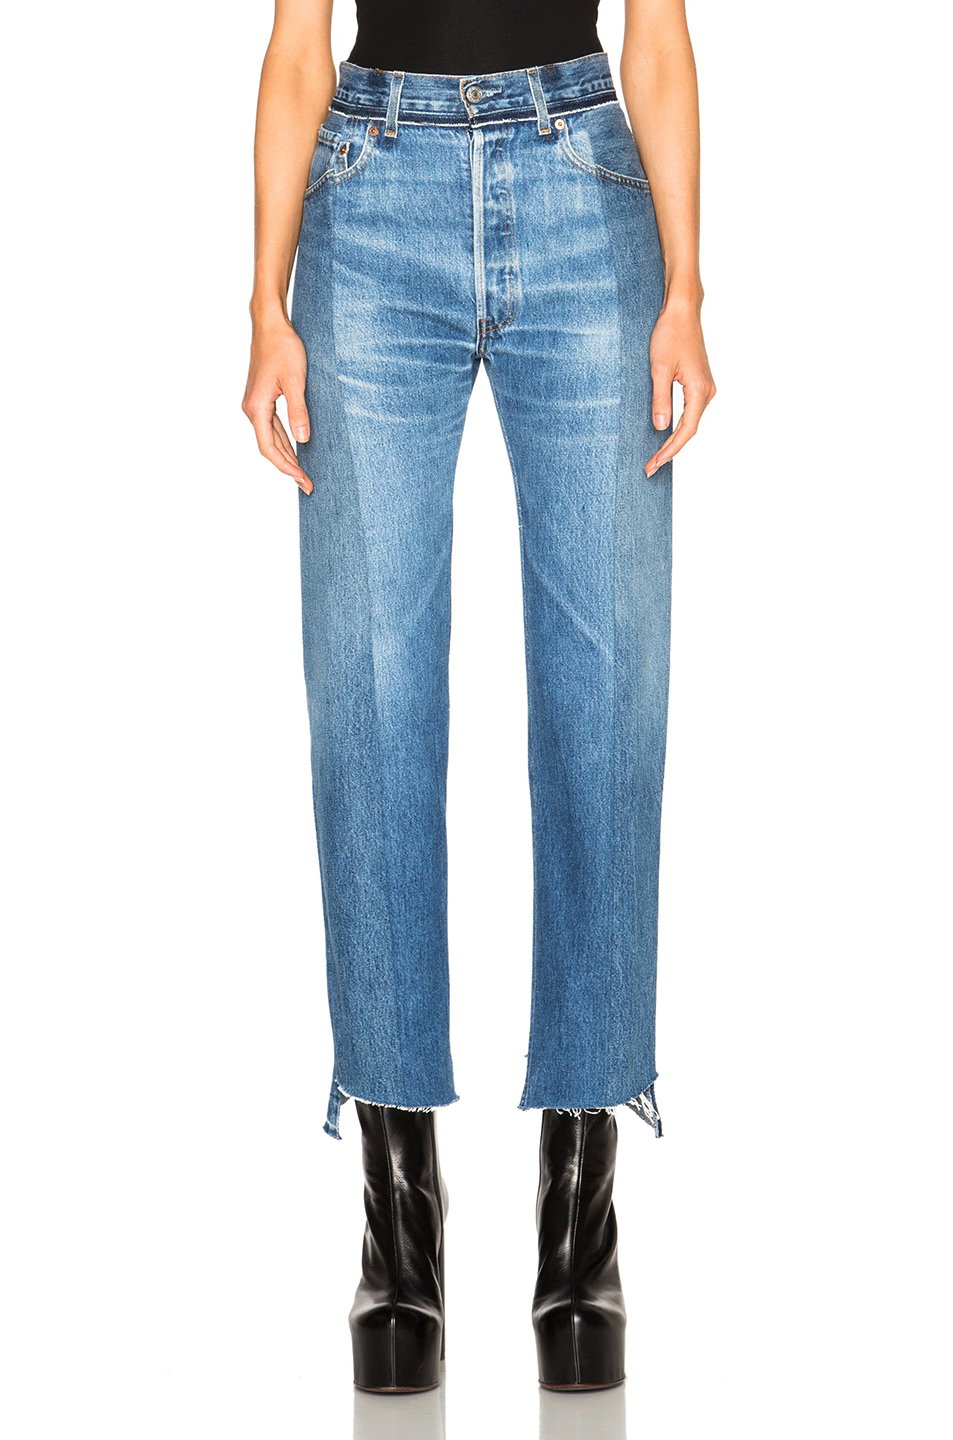 VETEMENTS SEASON 1 JEANS